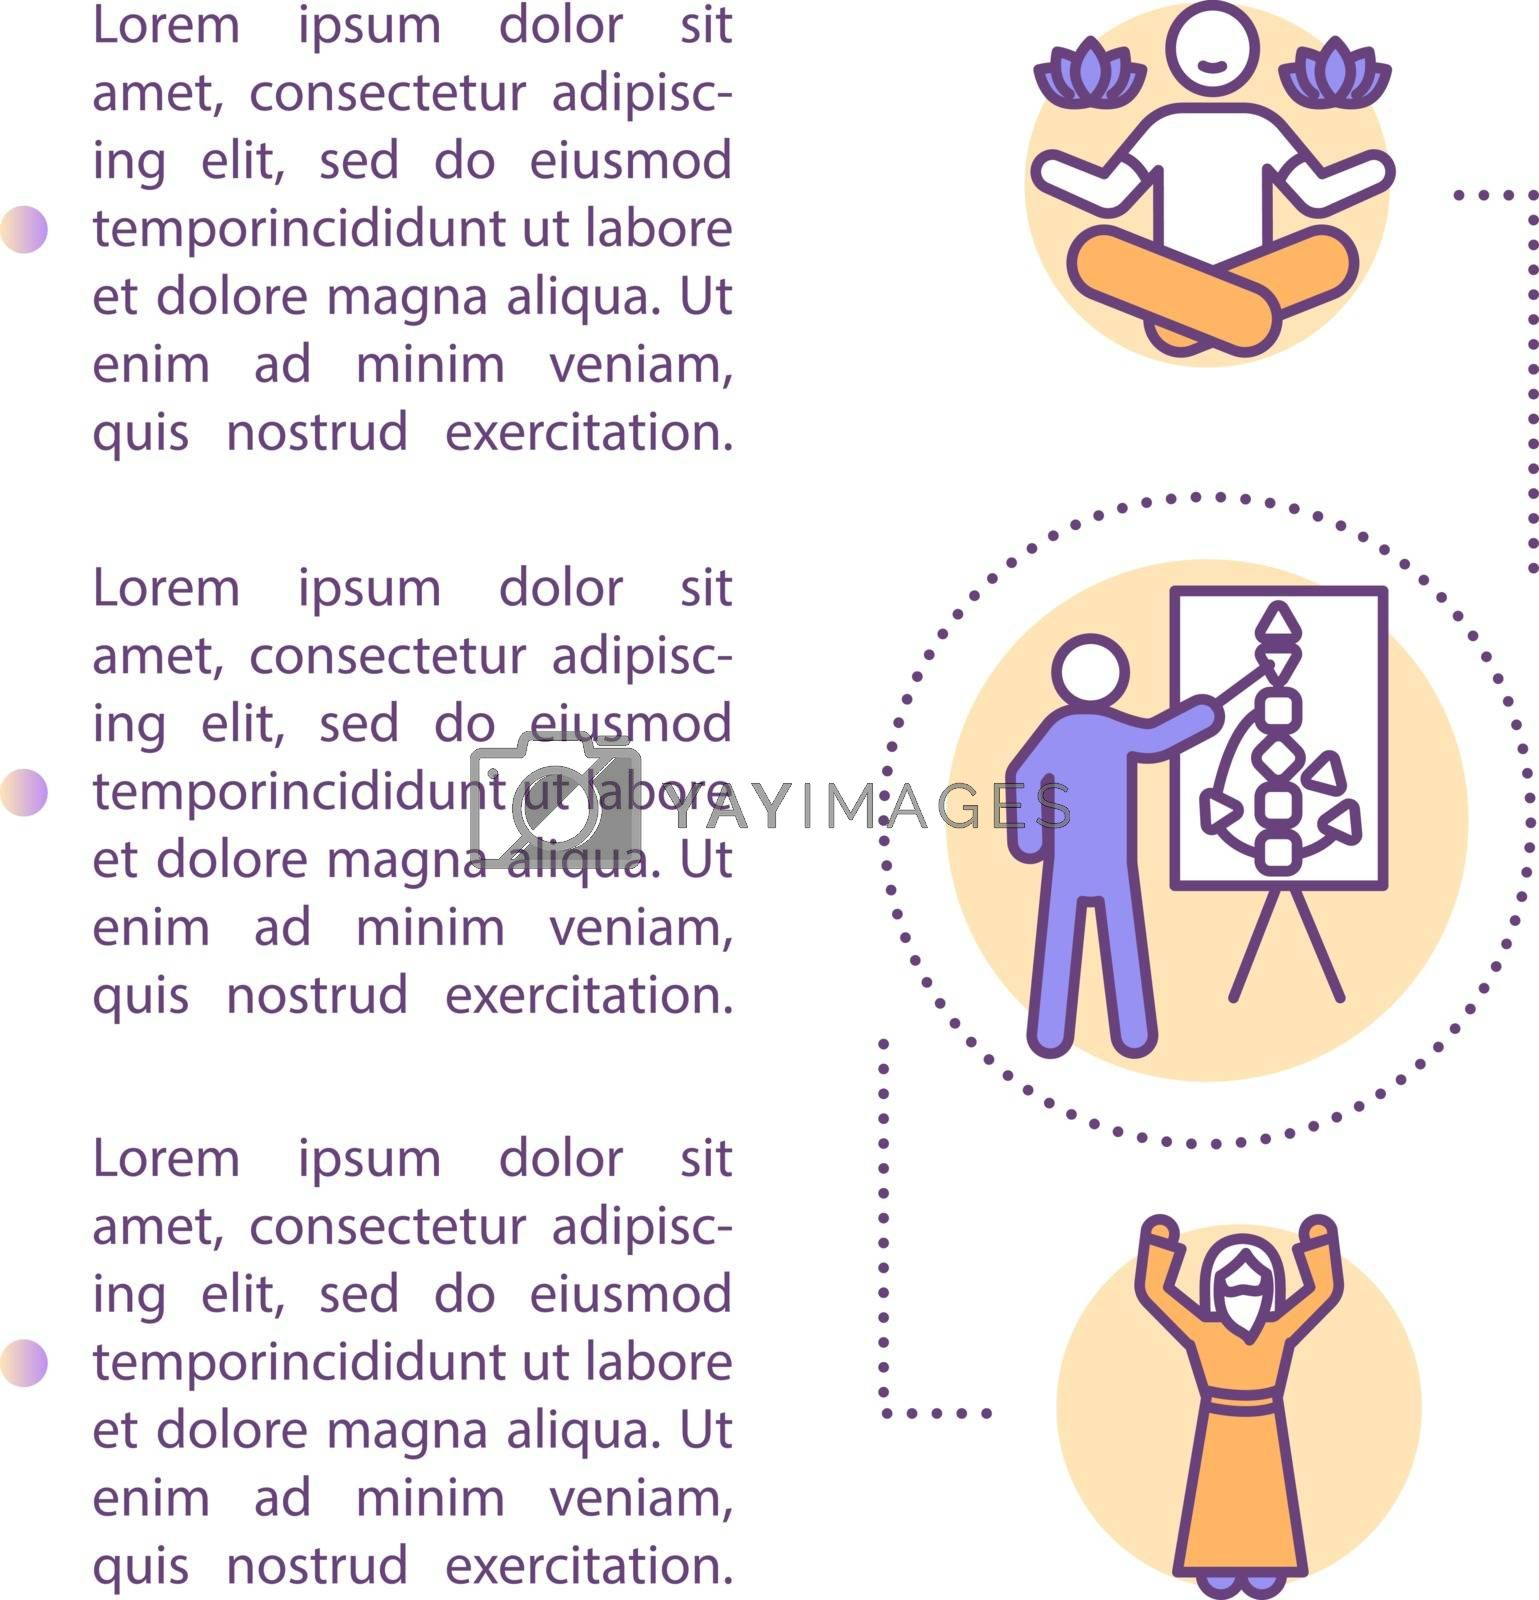 Self improvement concept icon with text. Eastern esoteric knowledge. Body graph. Meditation for balance. PPT page vector template. Brochure, magazine, booklet design element with linear illustrations